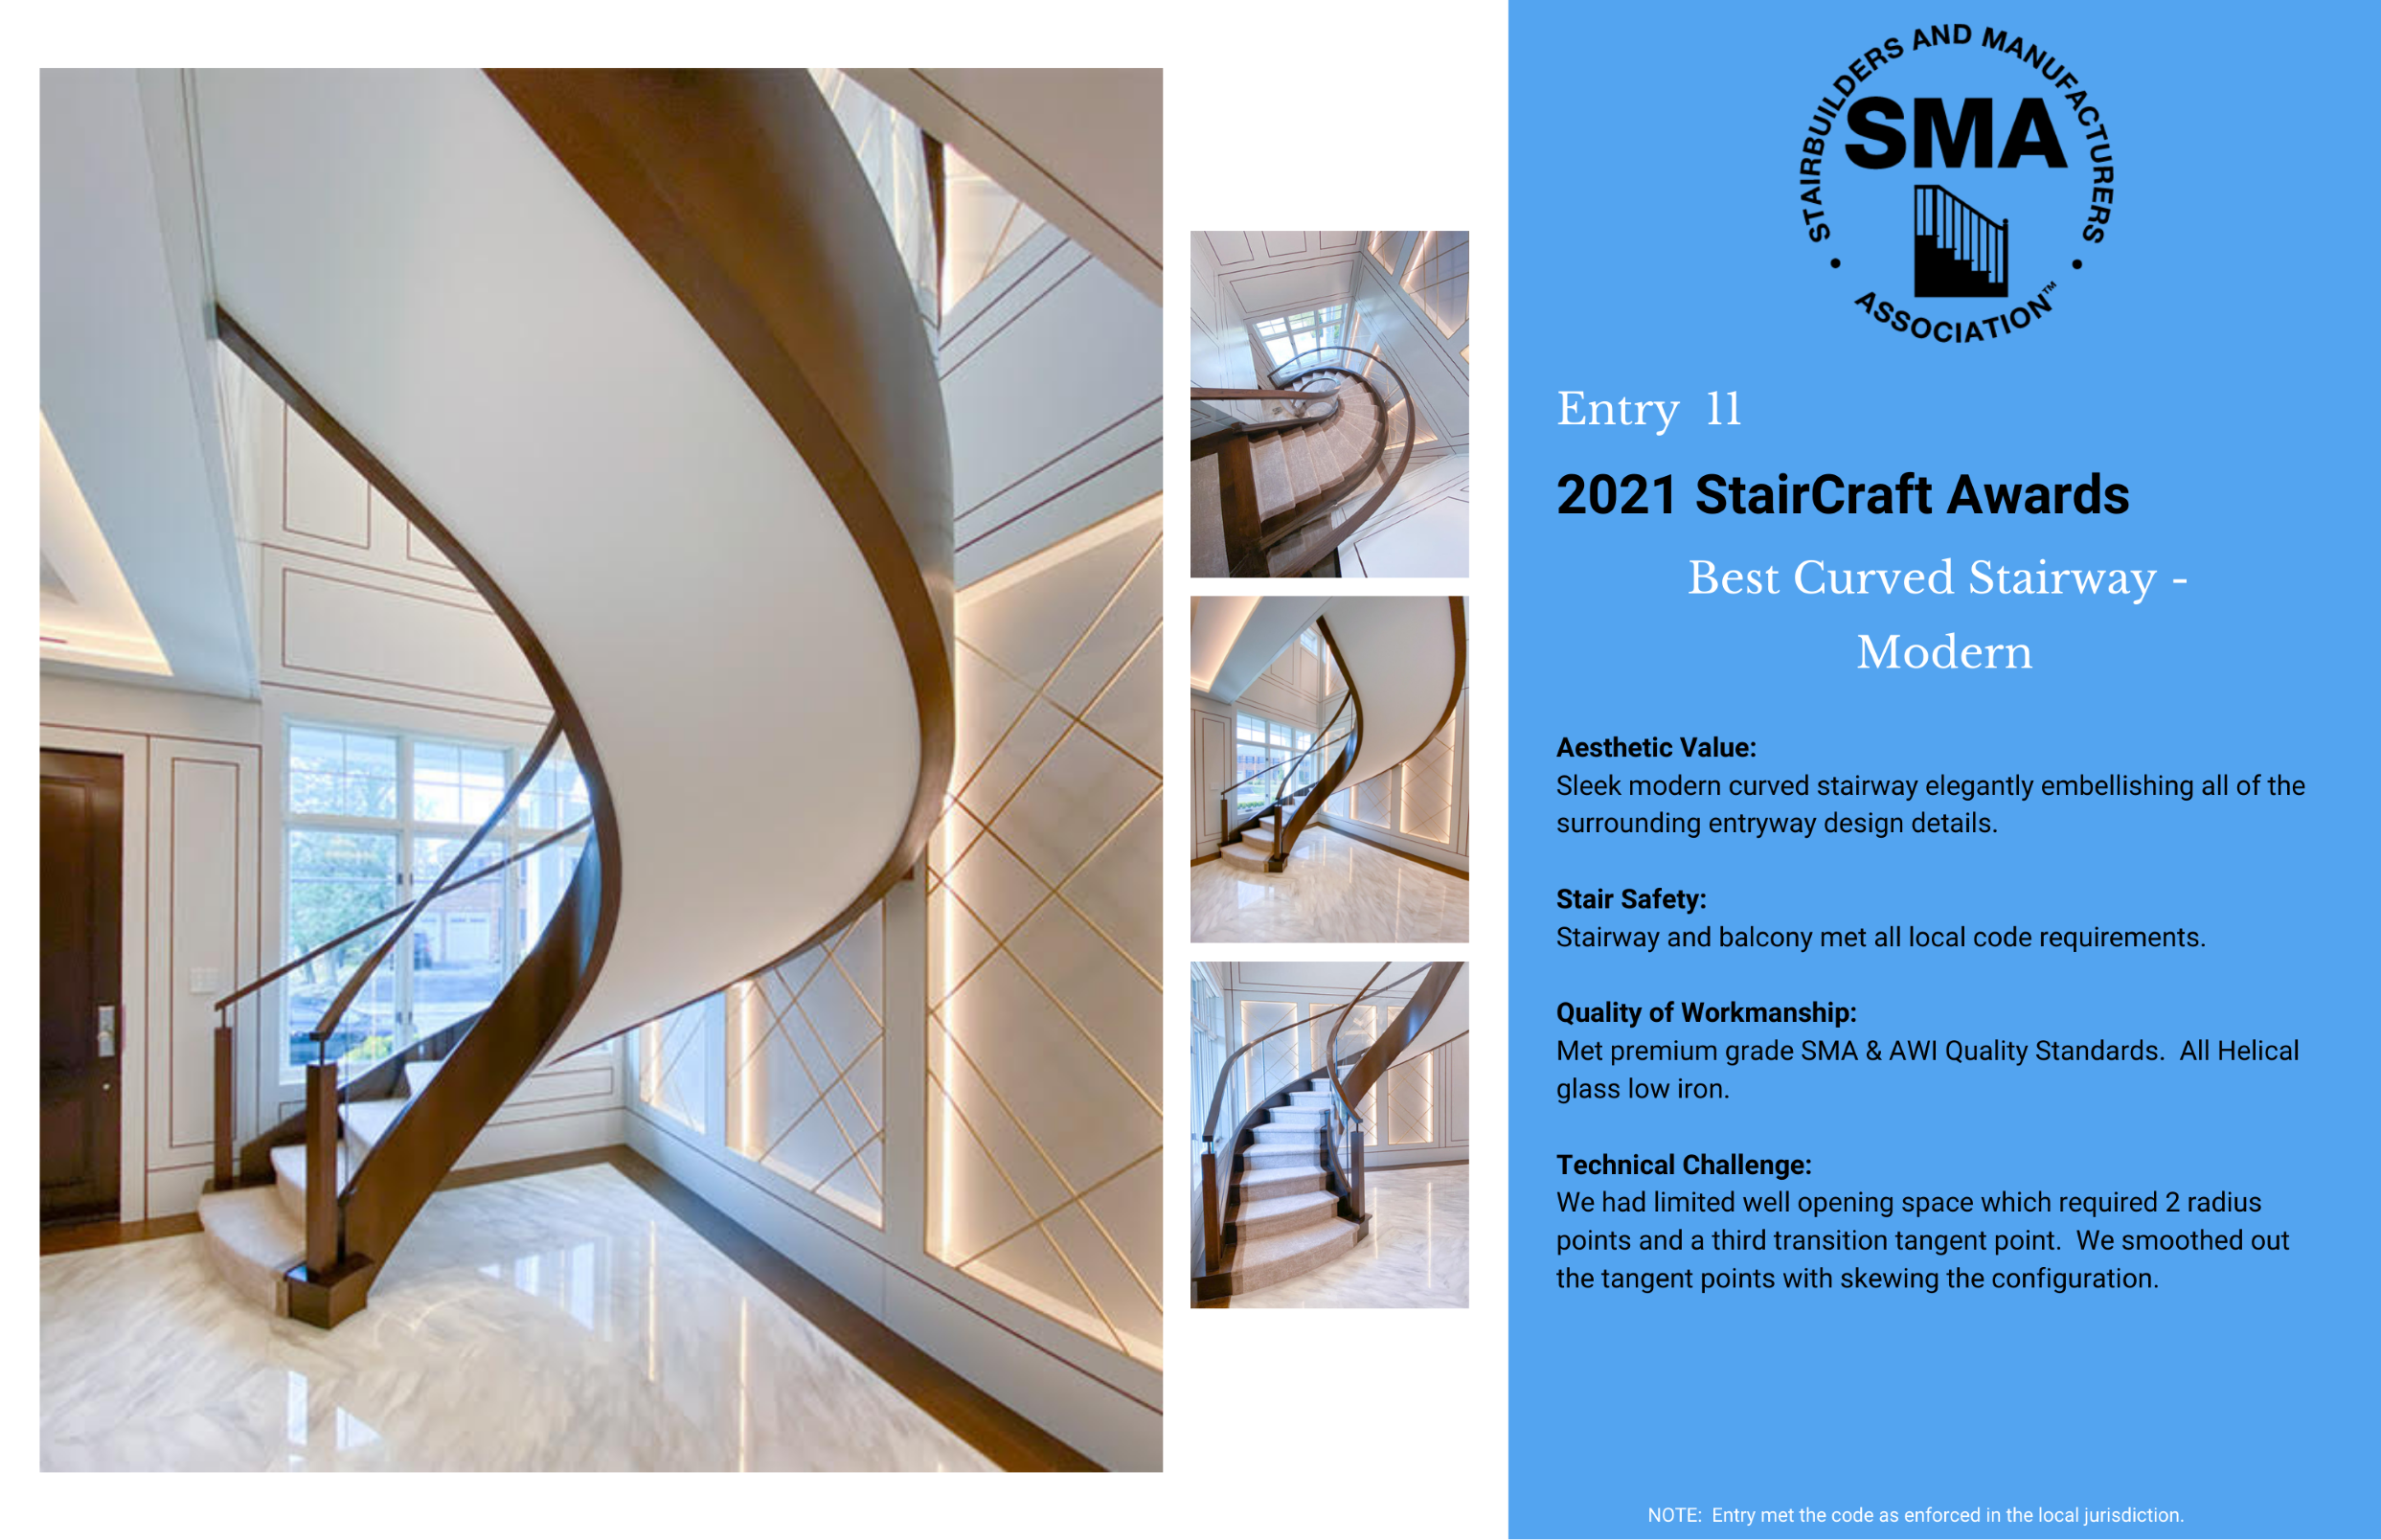 2021 StairCraft Awards Entry 11